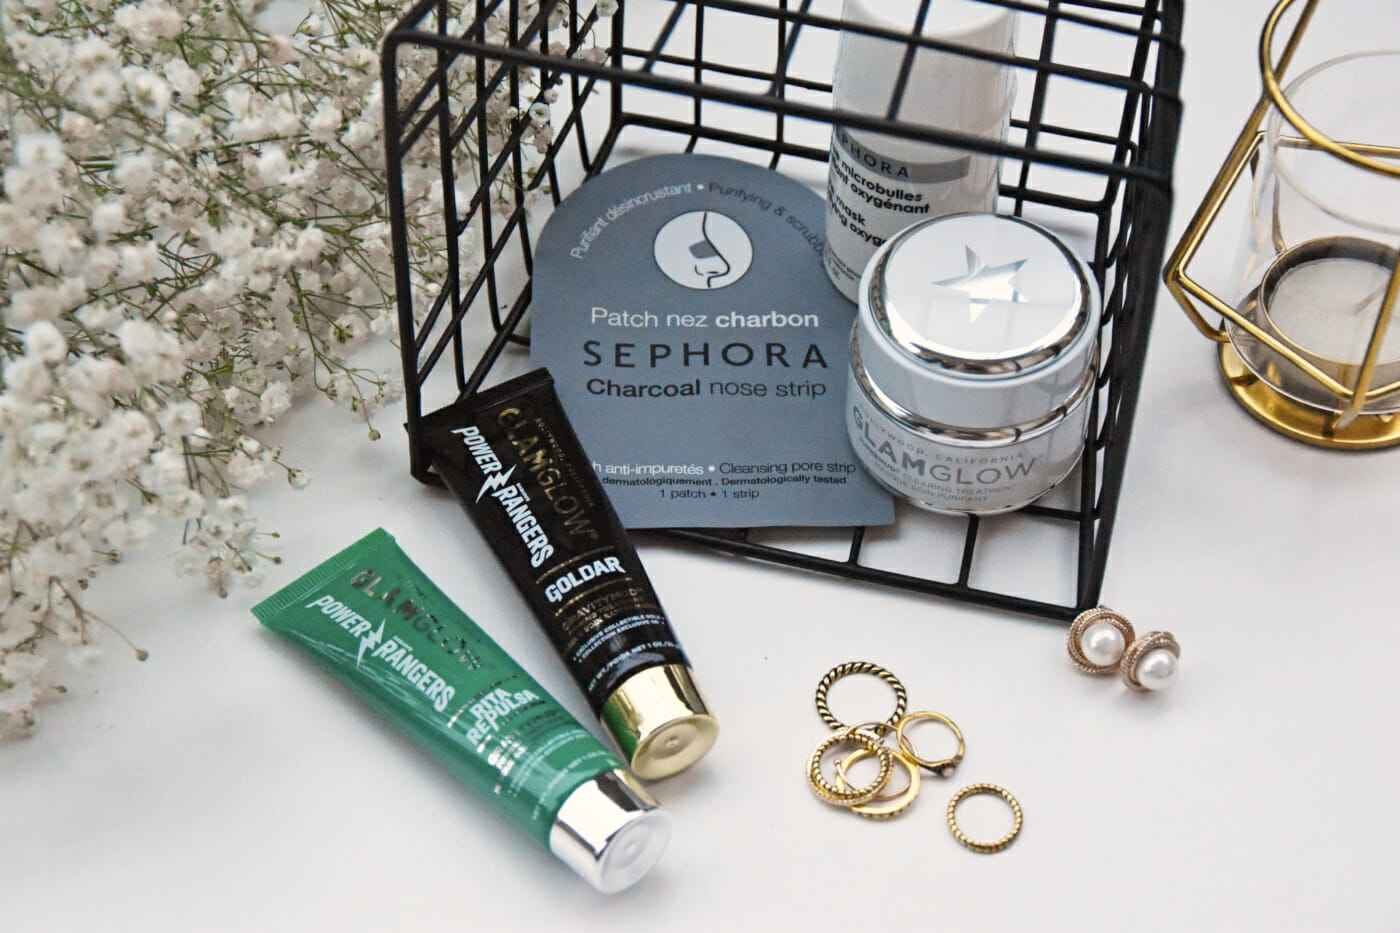 Mask special with Glamglow and Sephora